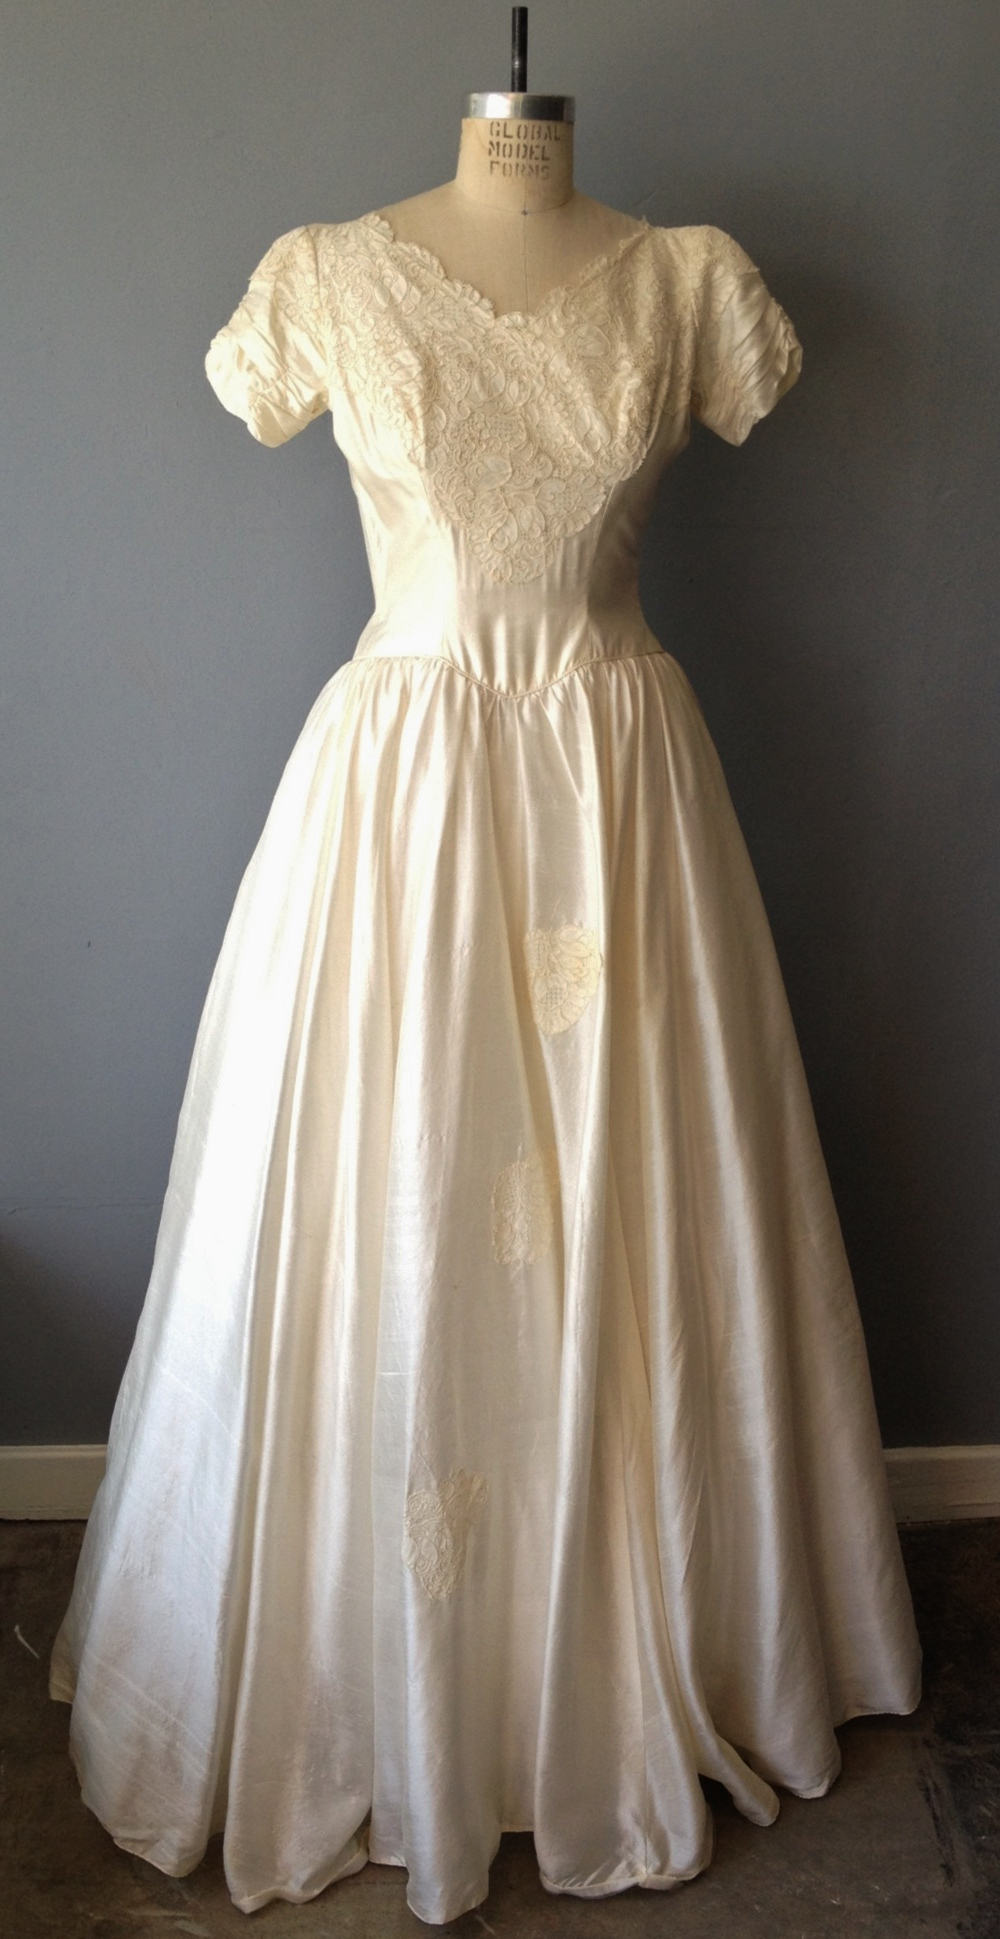 What To Know Before You Shop For A Vintage Wedding Dress